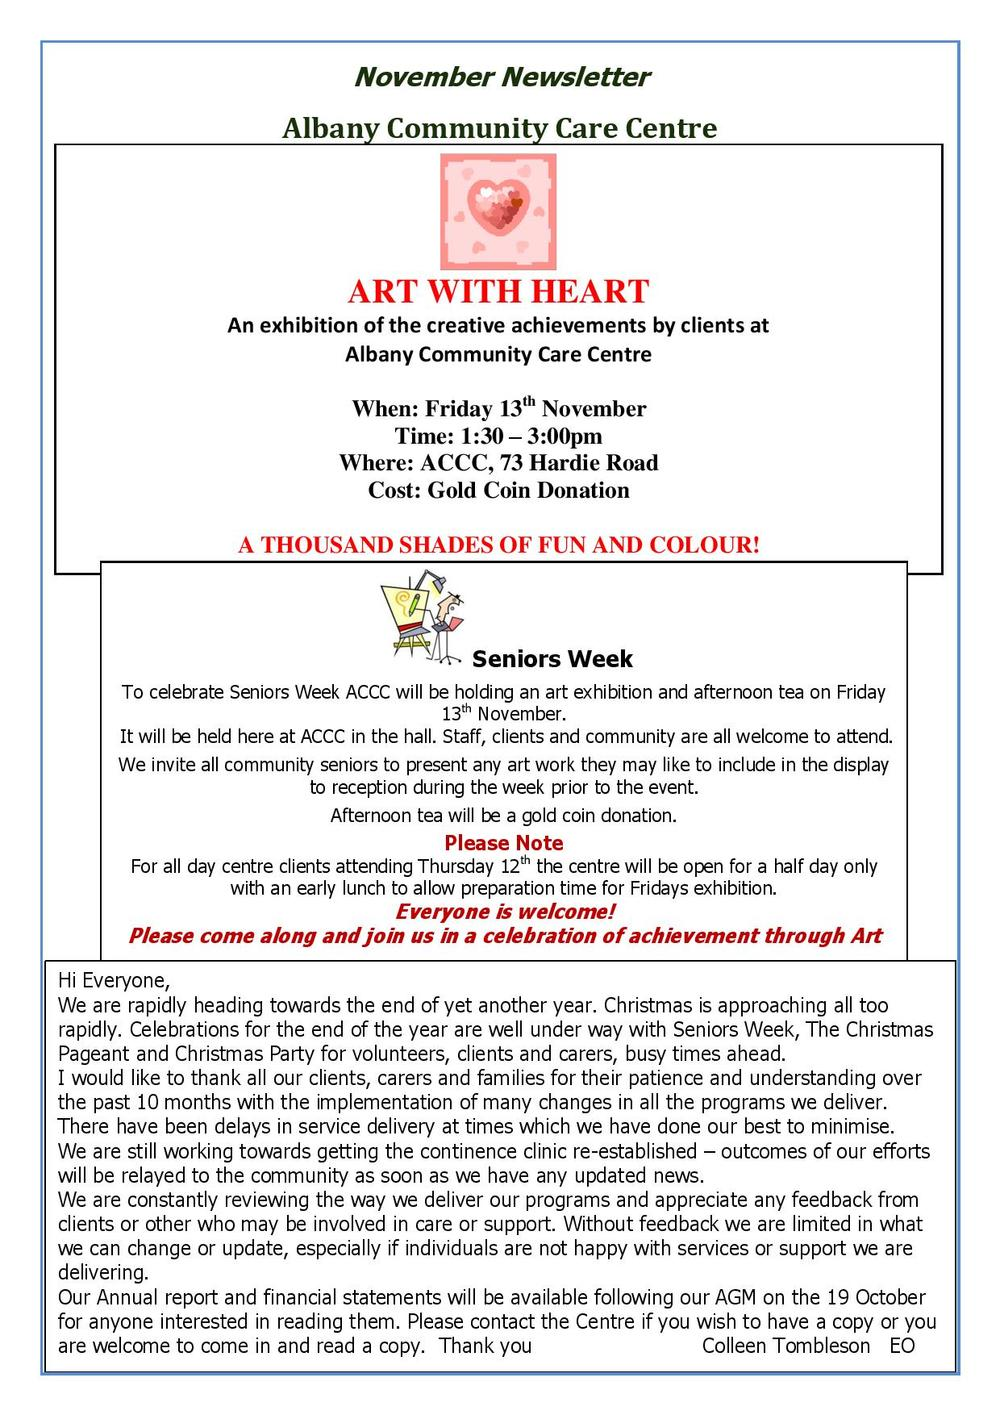 Albany Community Care Centre August 2015 Newsletter